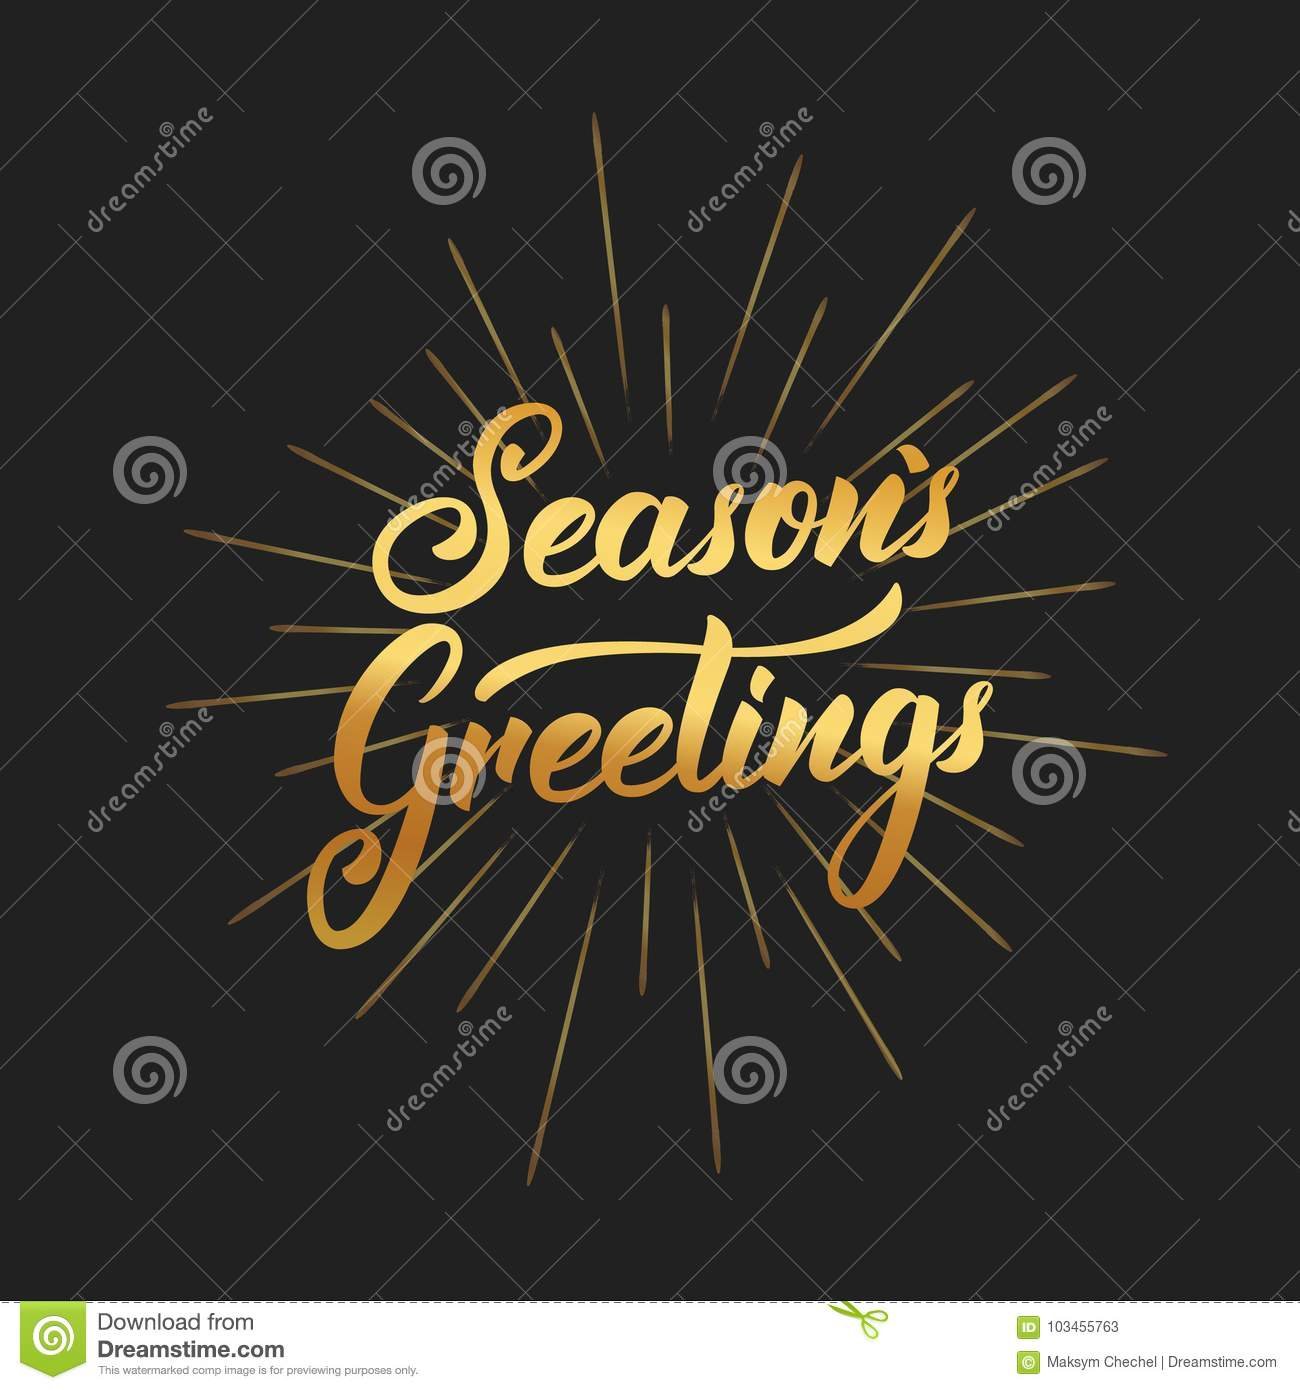 seasons greetings text lettering design christmas and new year greeting typography of gold gradient and